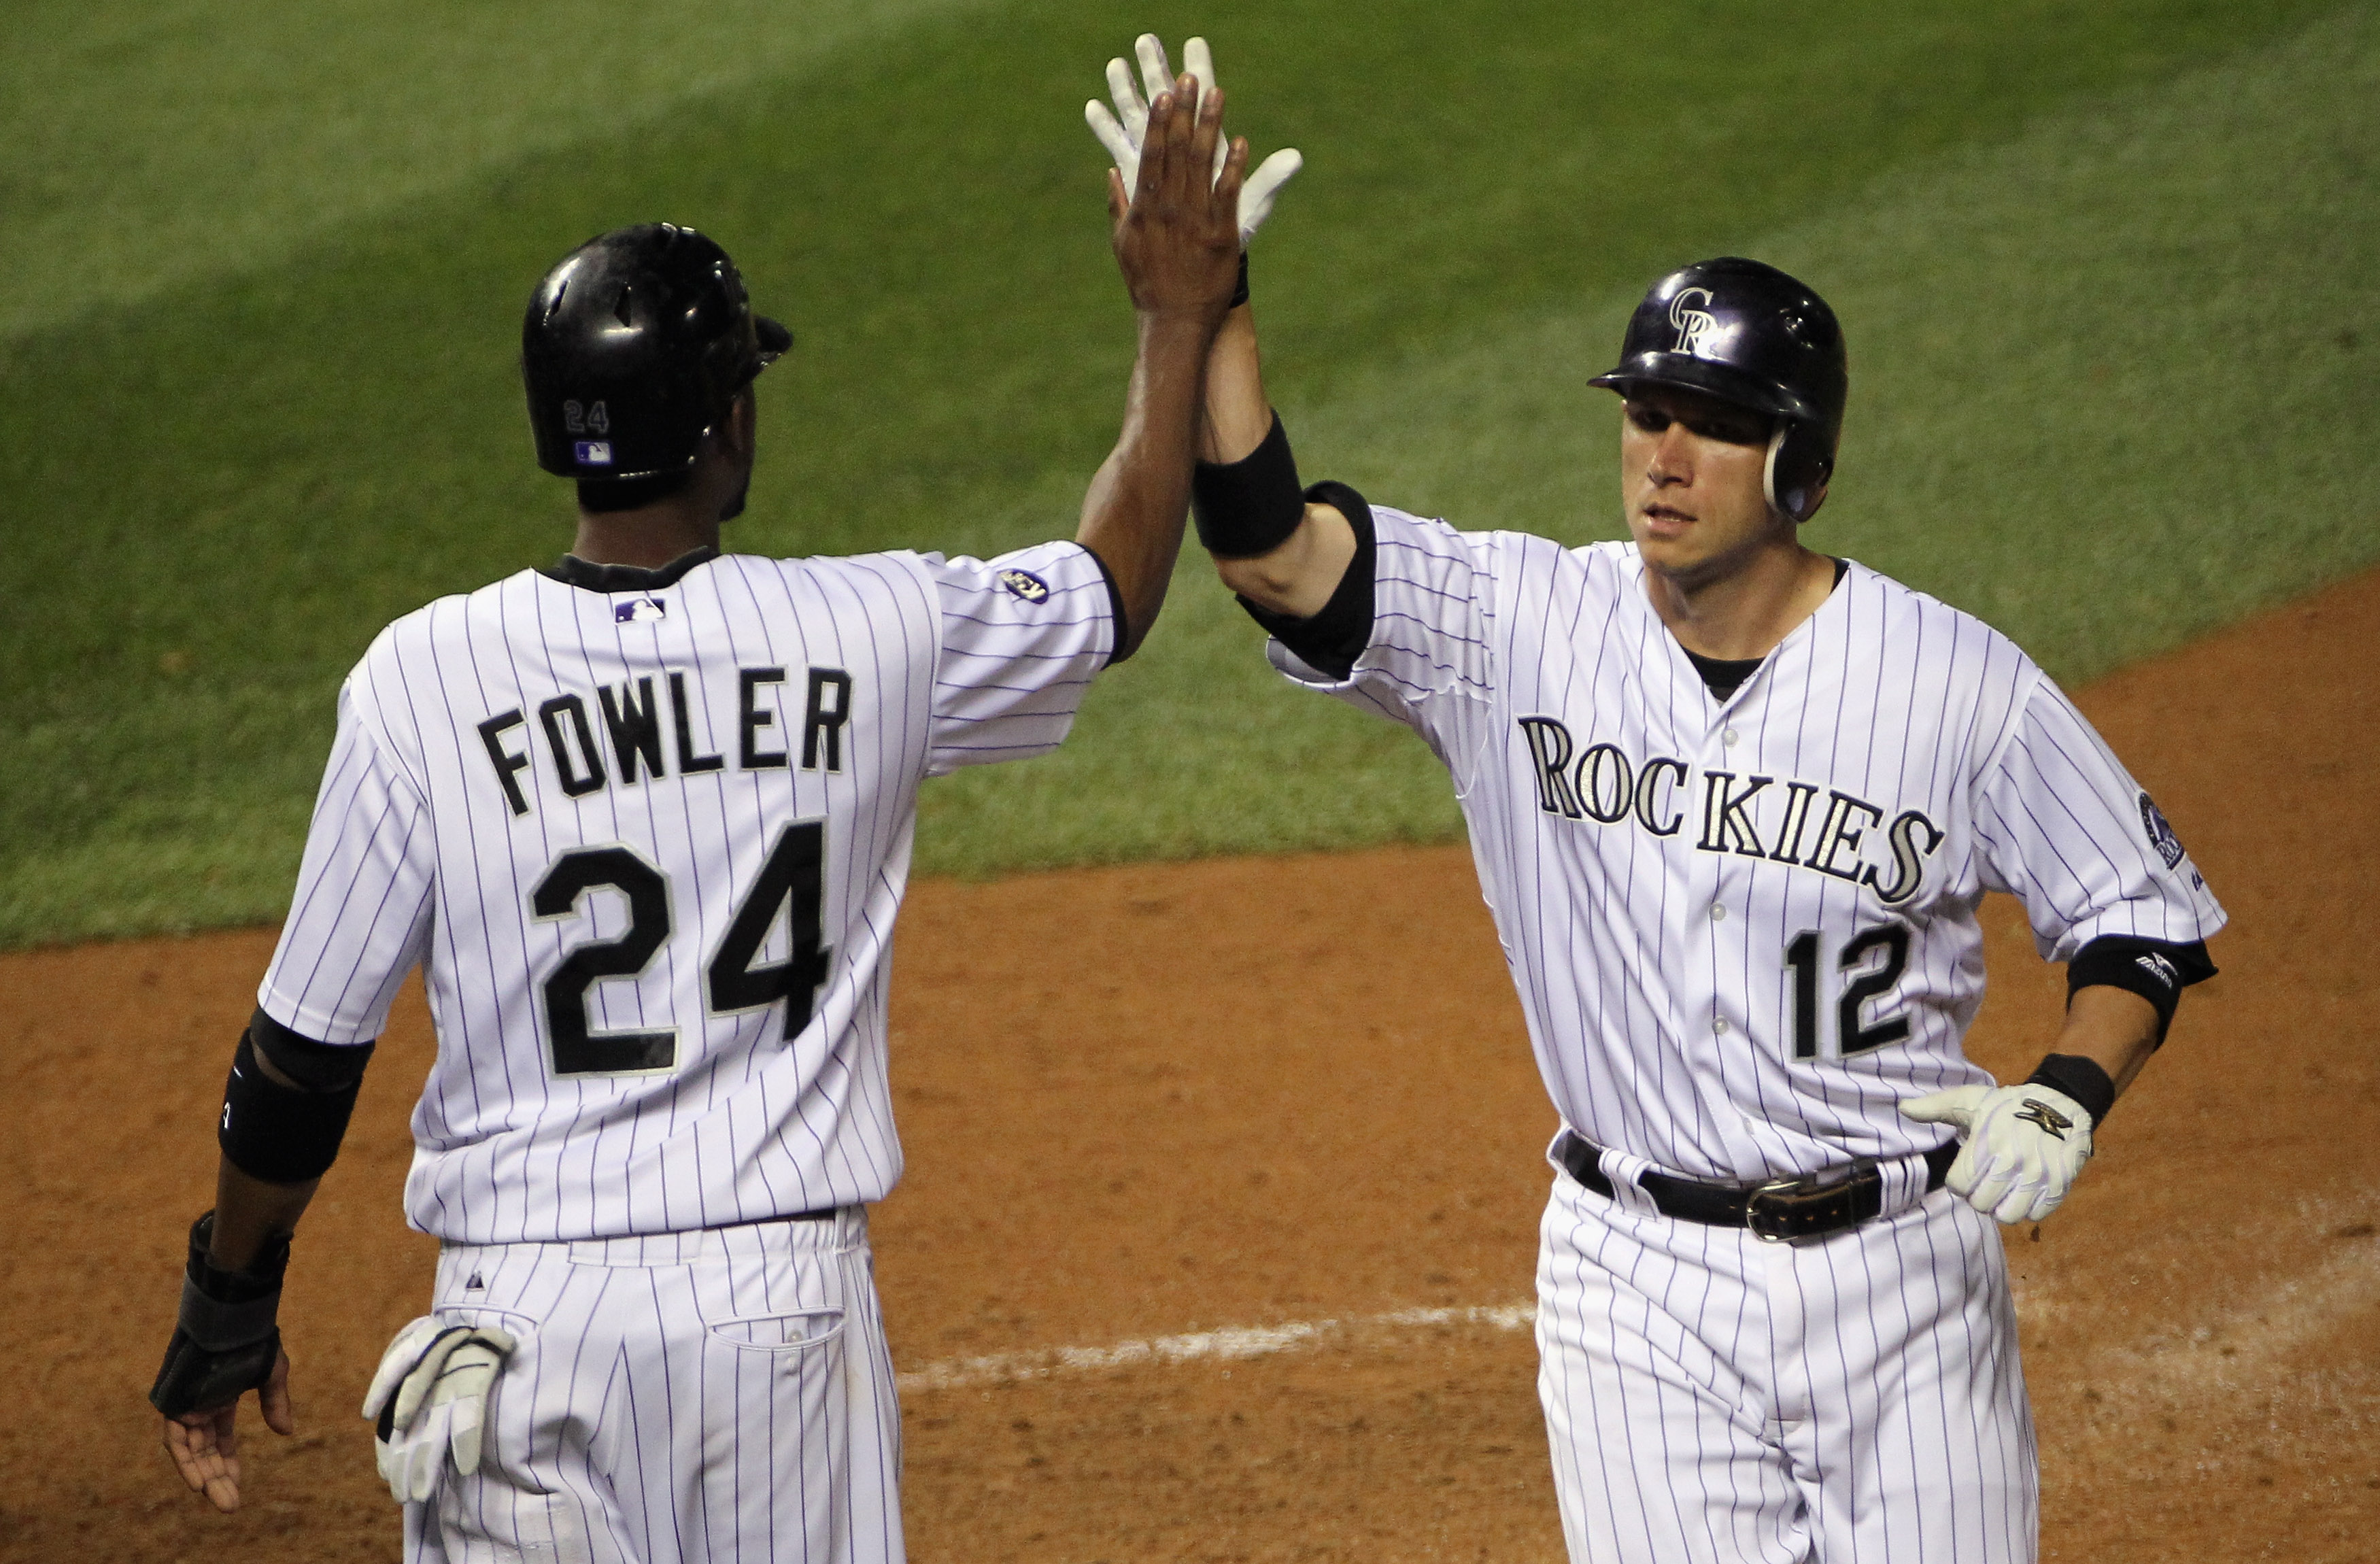 DENVER - SEPTEMBER 25:  Clint Barmes #12 and Dexter Fowler #24 of the Colorado Rockies celebrate after they scored on a double by Troy Tulowitzki to tie the score 9-9 with the San Francisco Giants in the eighth inning at Coors Field on September 25, 2010